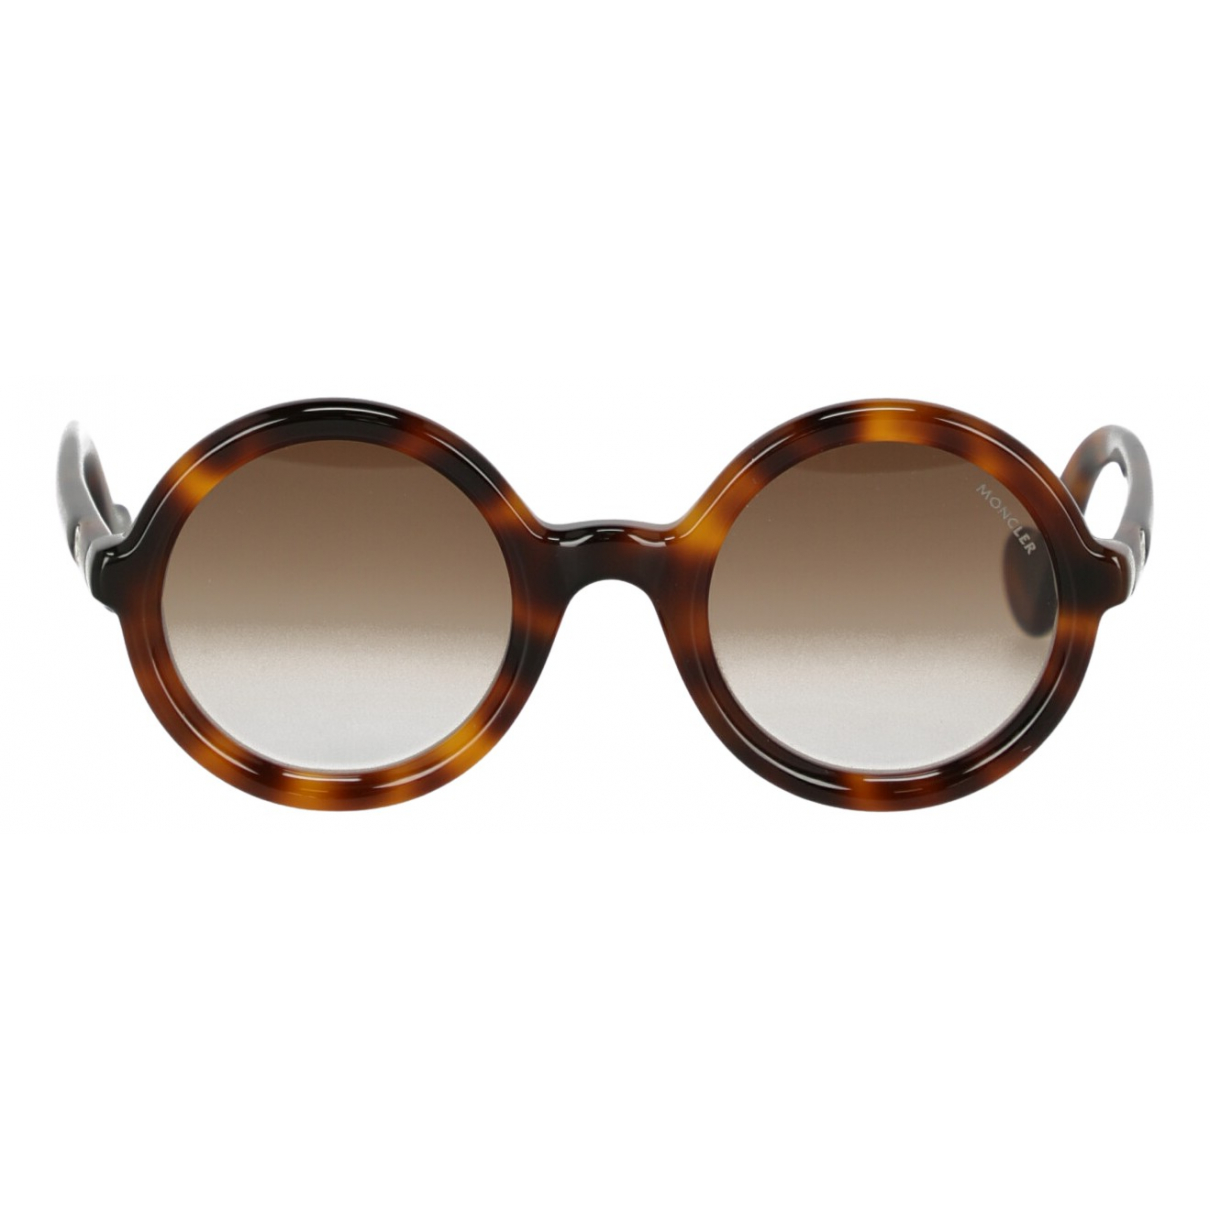 Moncler N Brown Sunglasses for Women N